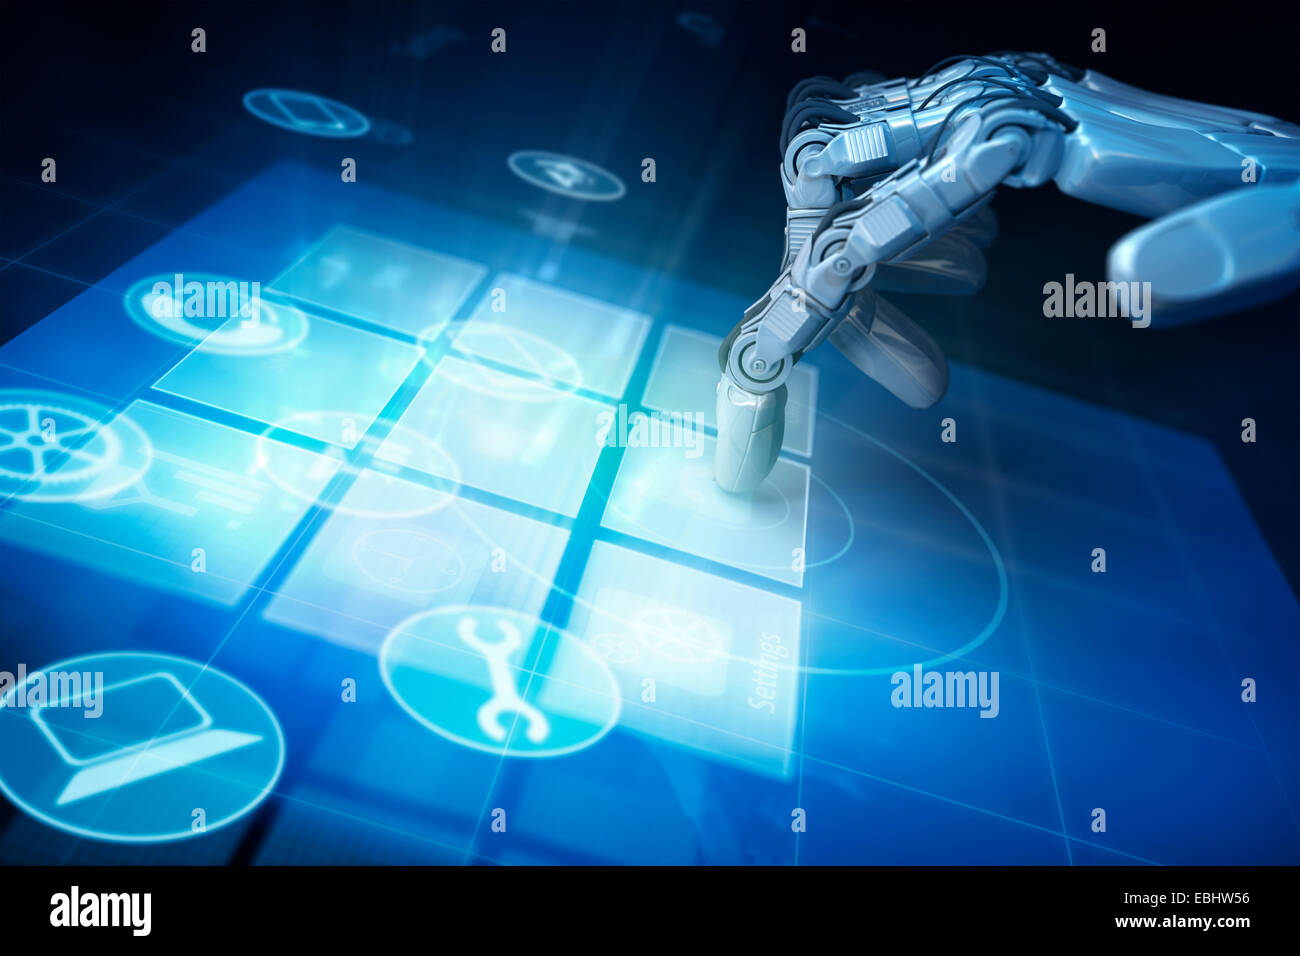 Hand of robot and touchscreen. - Stock Image